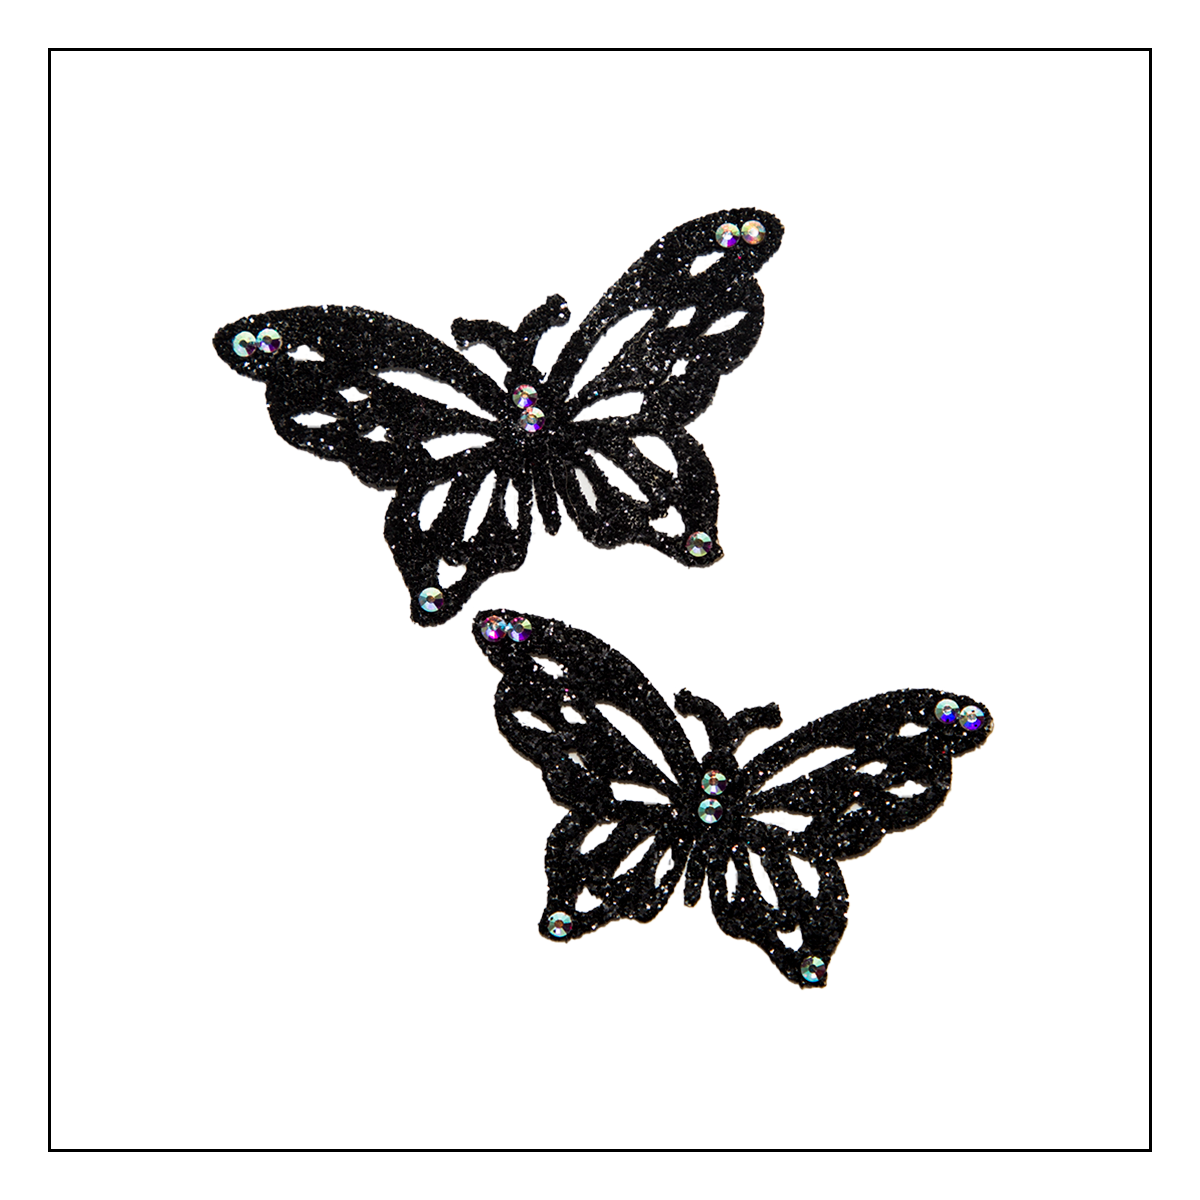 Skin Jewerly Butterfly Black 3 - 1 pair